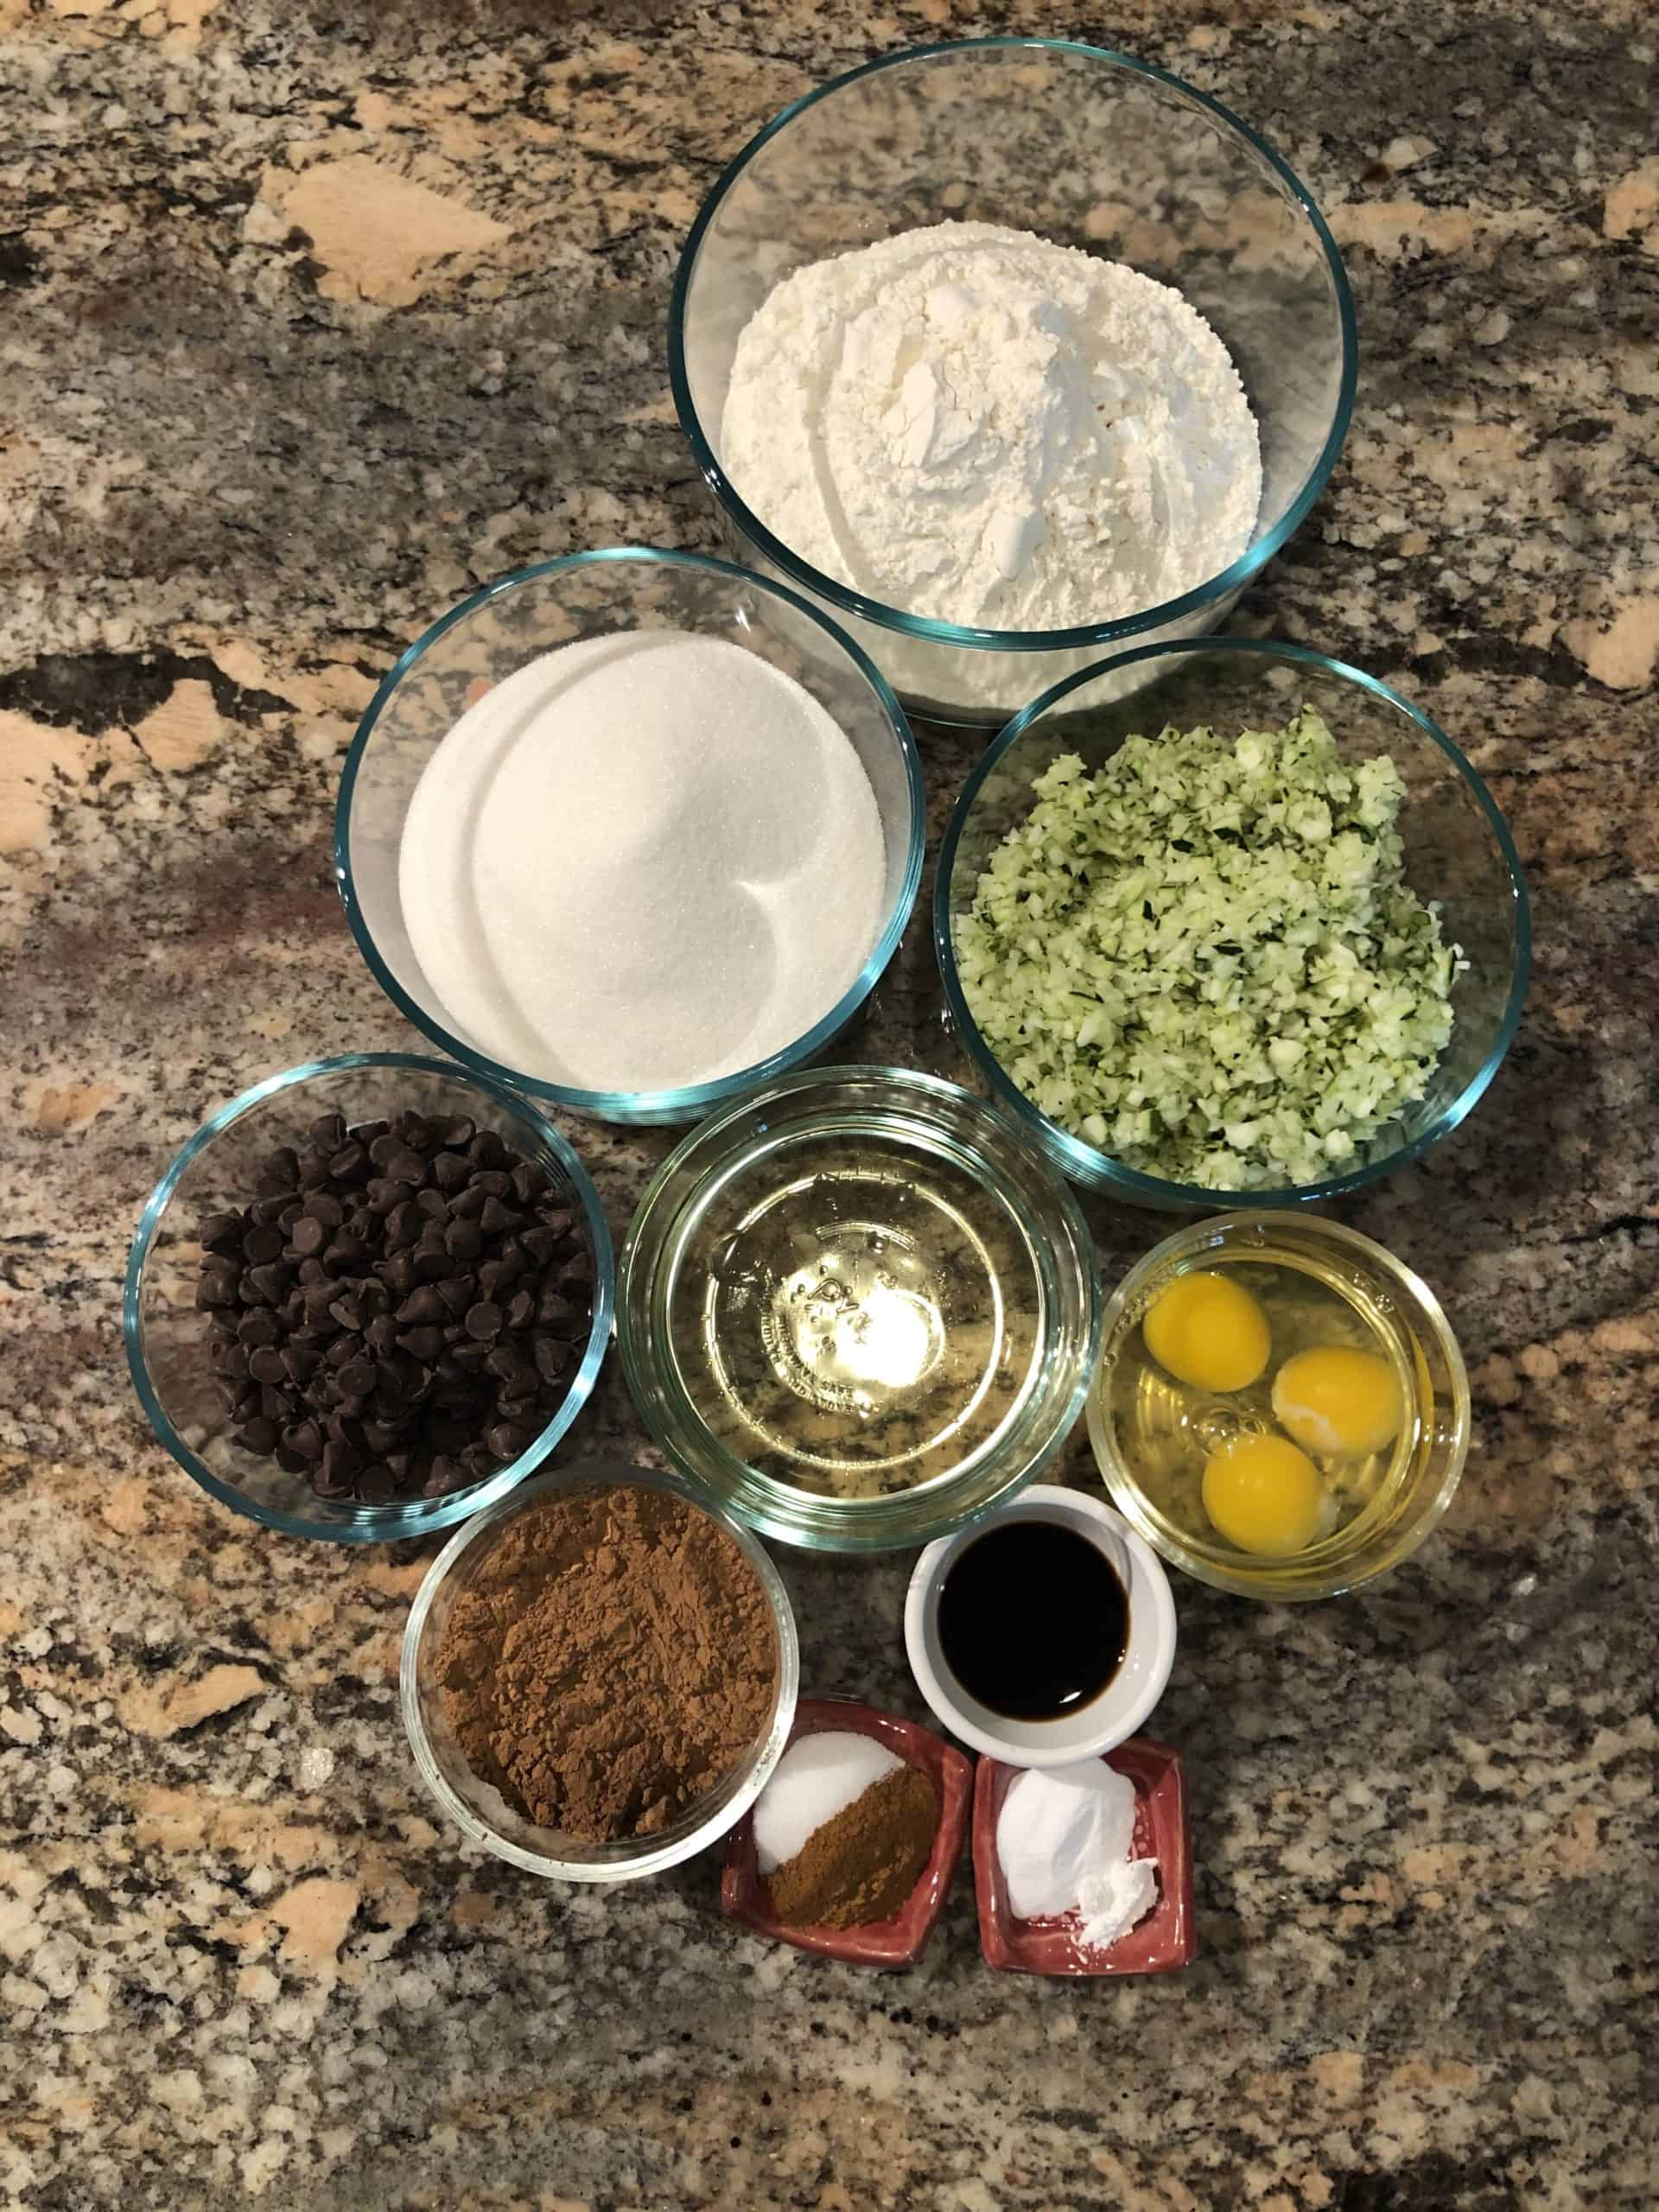 Triple Chocolate Zucchini Bread/Muffins Ingredients